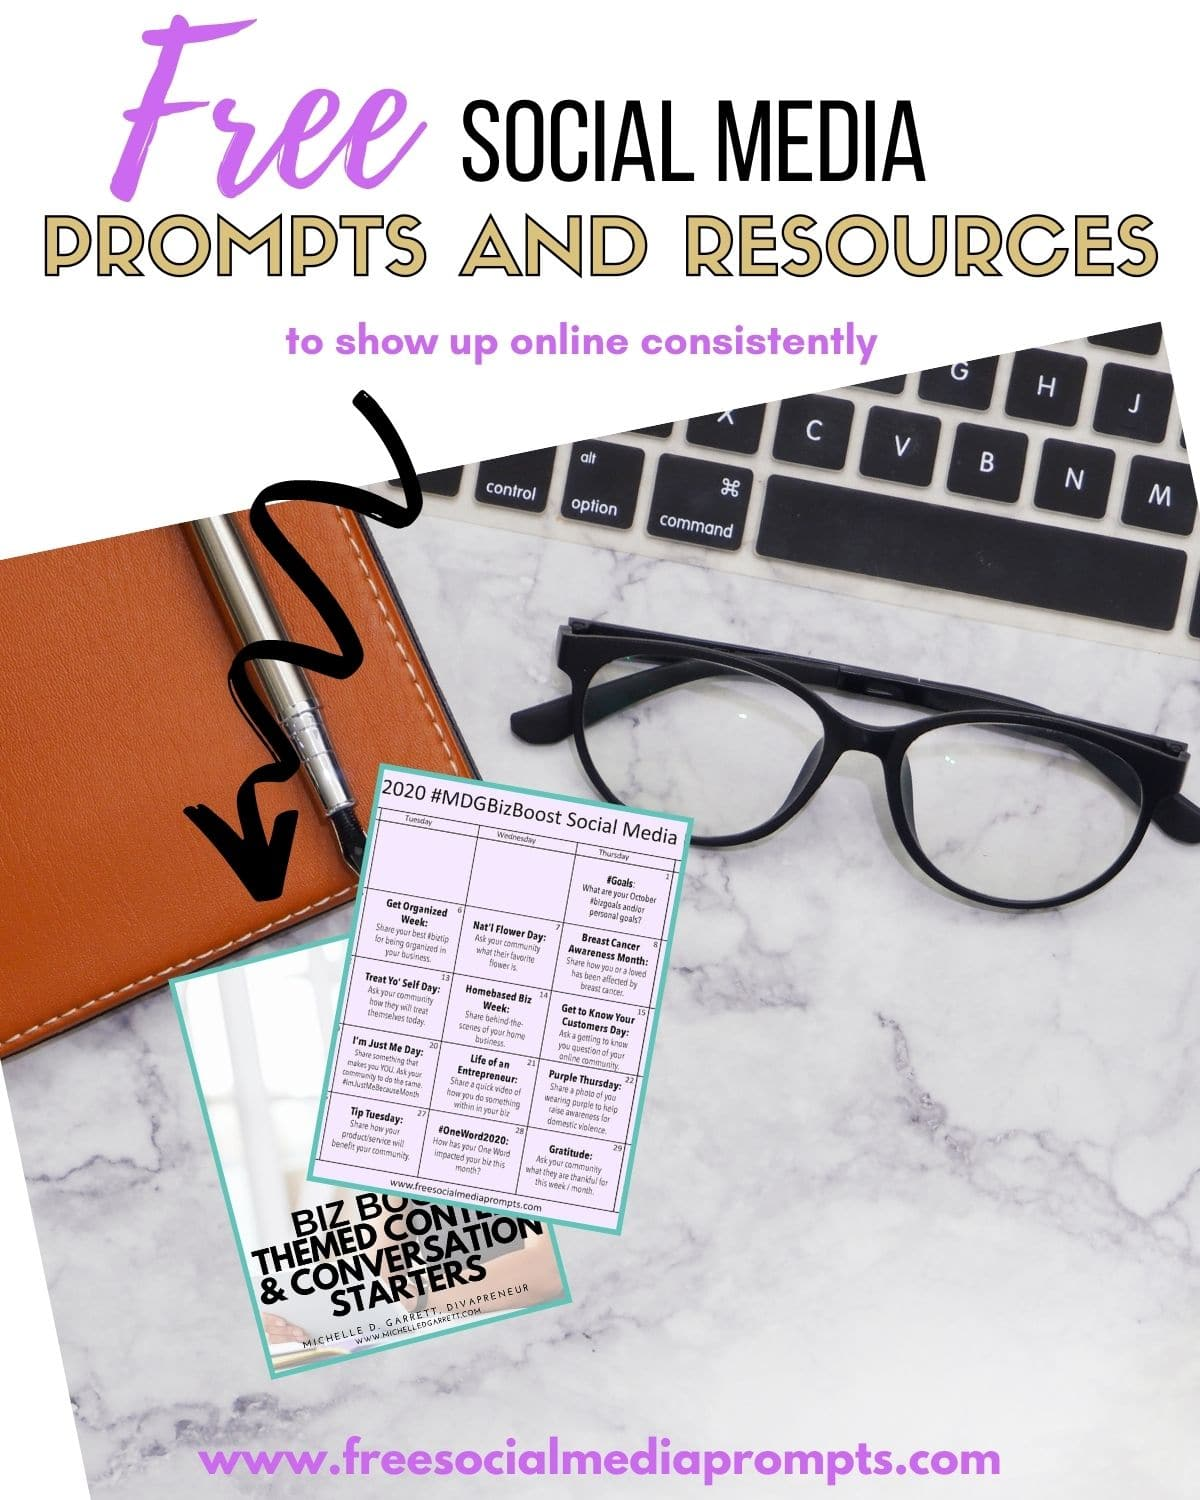 Sign up for my #MDGBizBoost newsletter and receive 30 days of social media prompts and resources to help plan your content.  www.freesocialmediaprompts.com